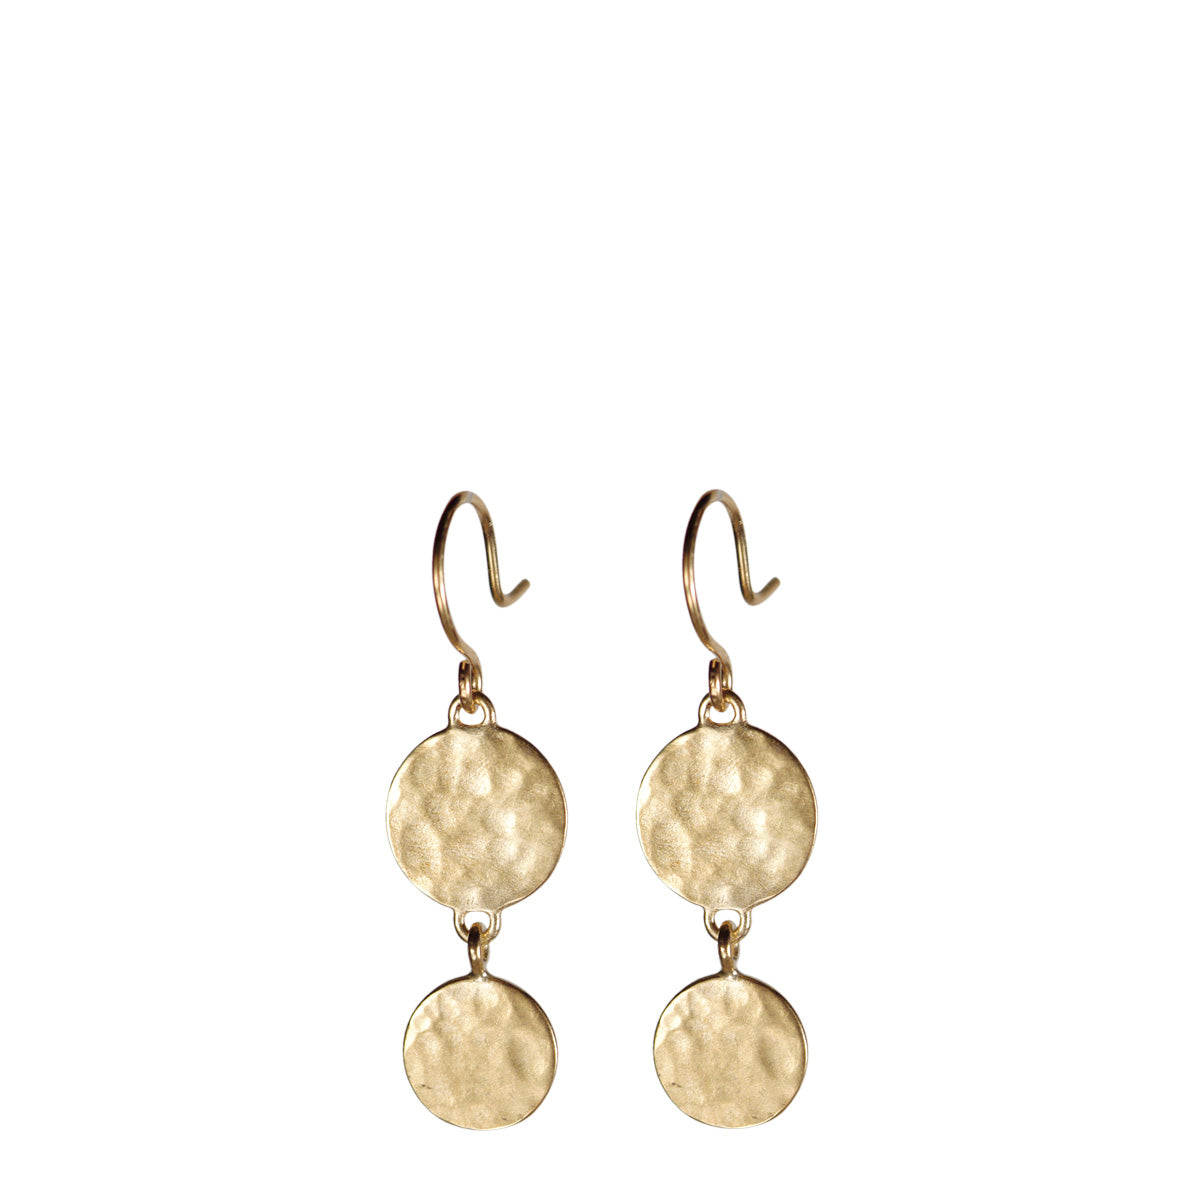 10K Gold Double Hammered Disc Drop Earrings